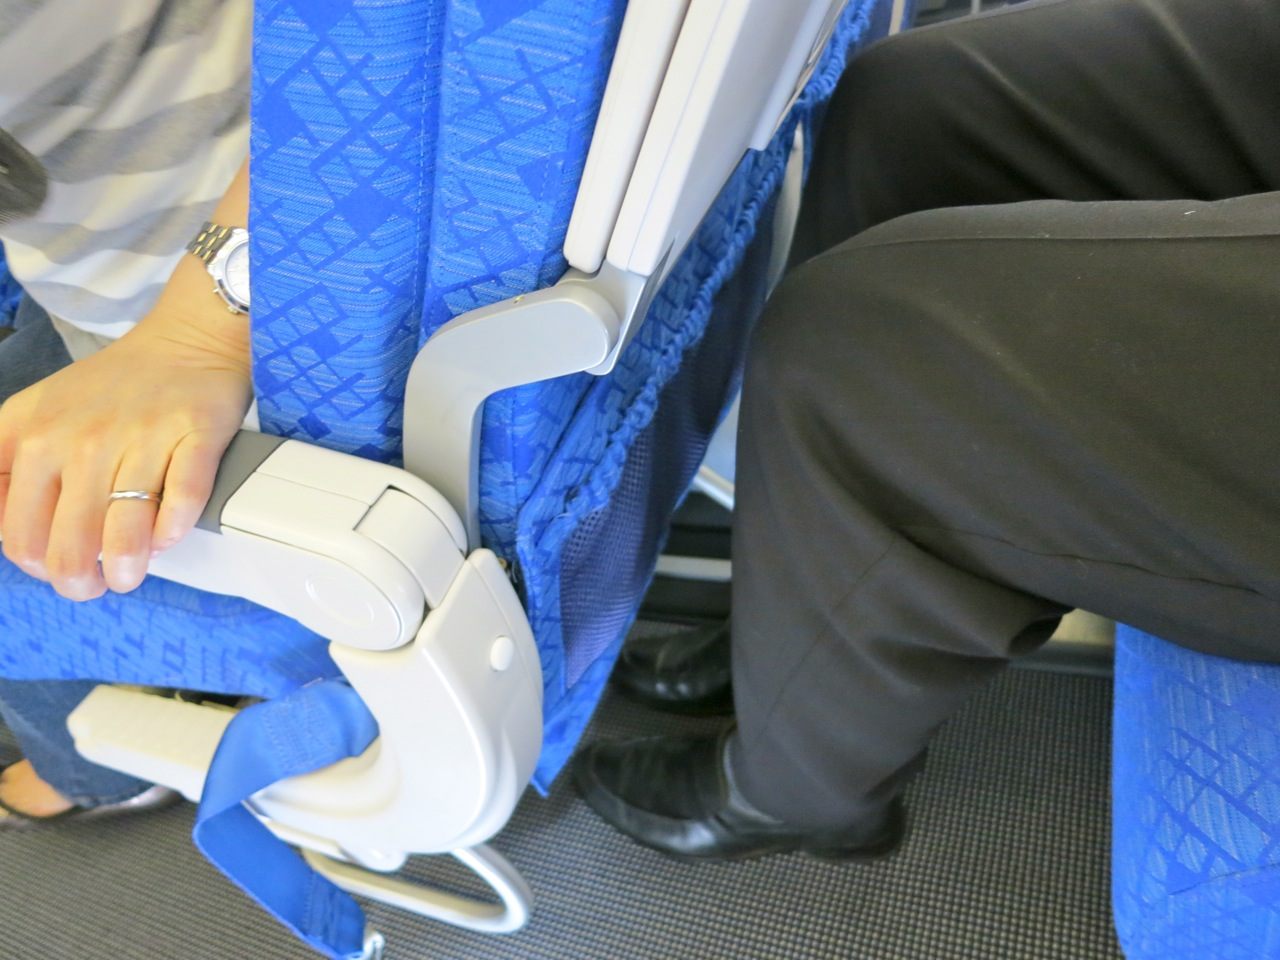 Knee room in economy on Cathay Pacific's B777-300ER (Chris McGinnis)